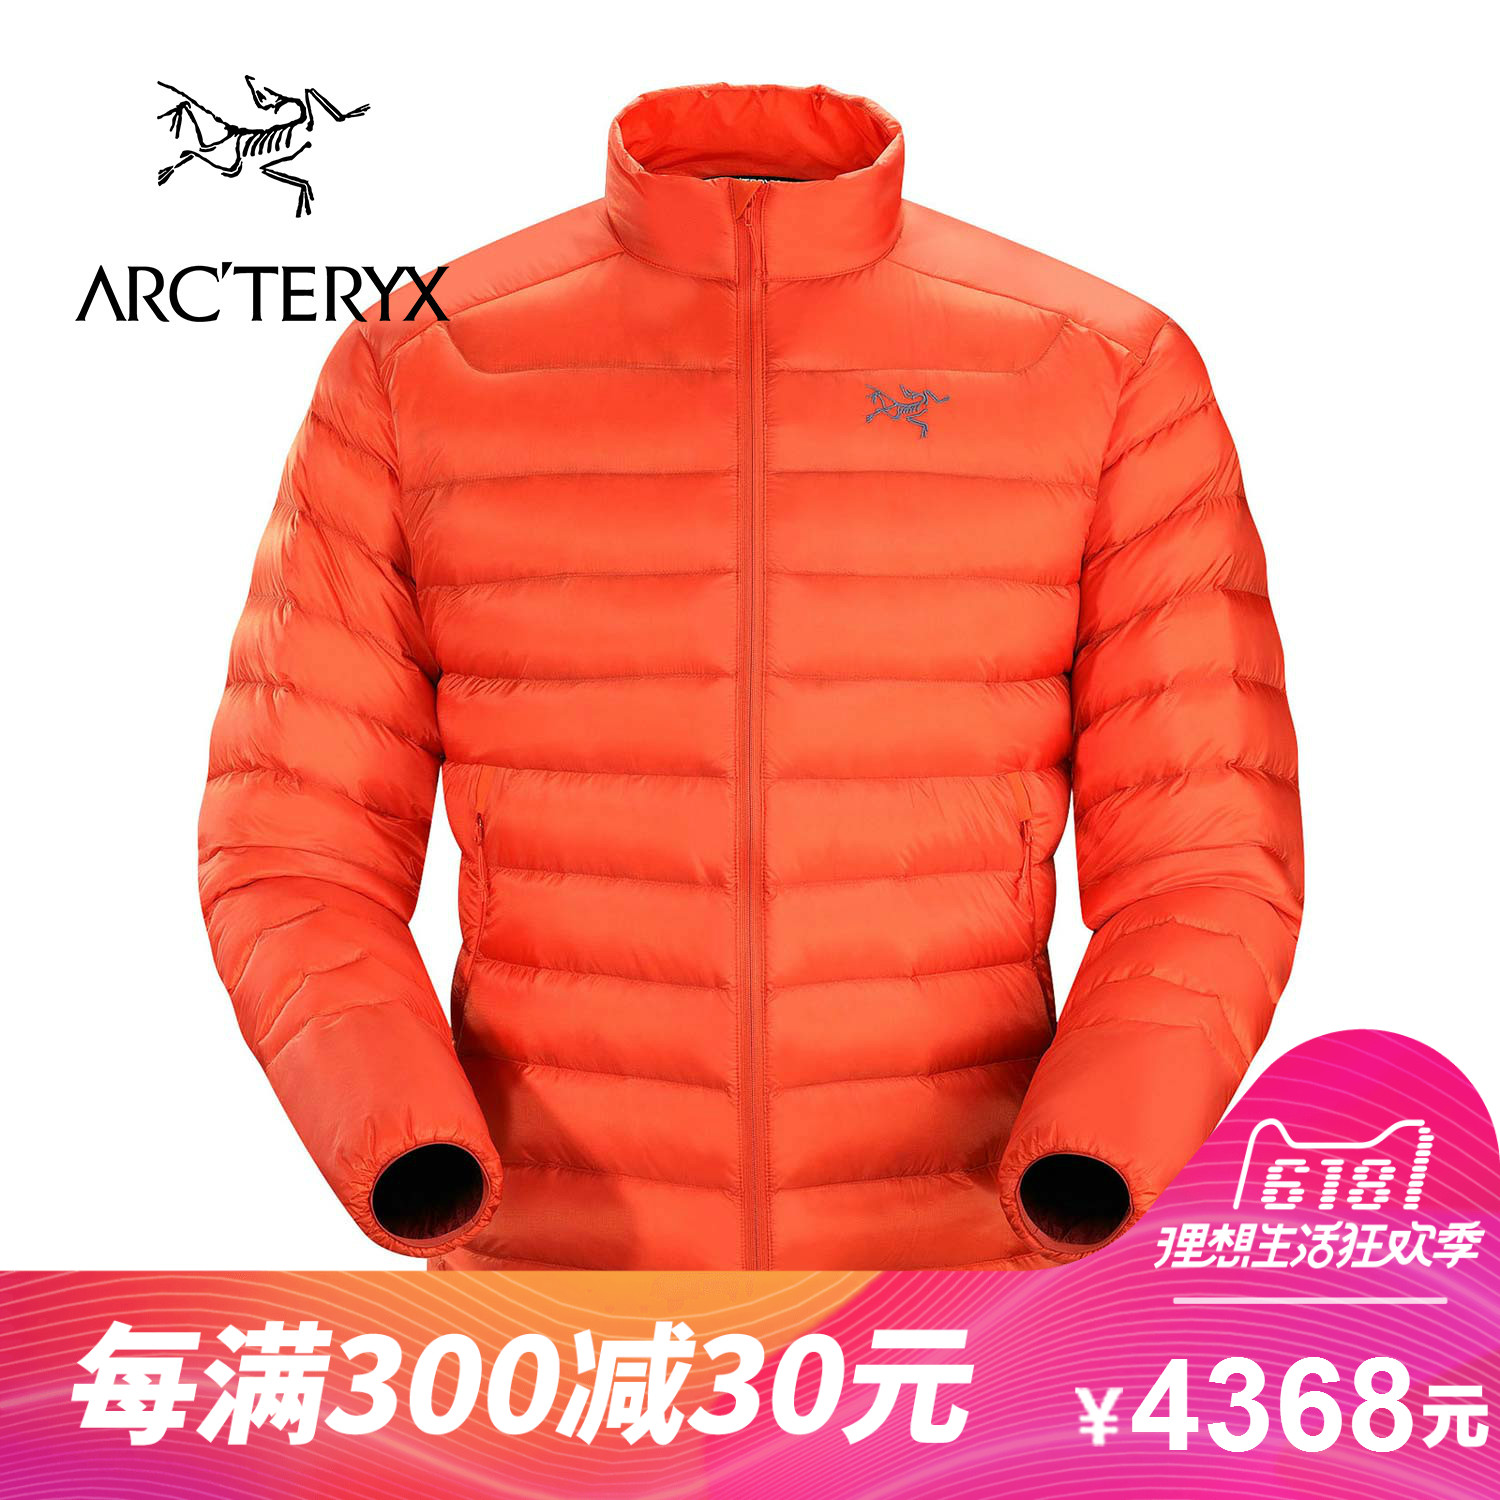 [The goods stop production and no stock]ARCTERYX / Archaeopteryx Men's Outdoor Lightweight Warm Stand Collar Down Jacket Cerium LT 13239